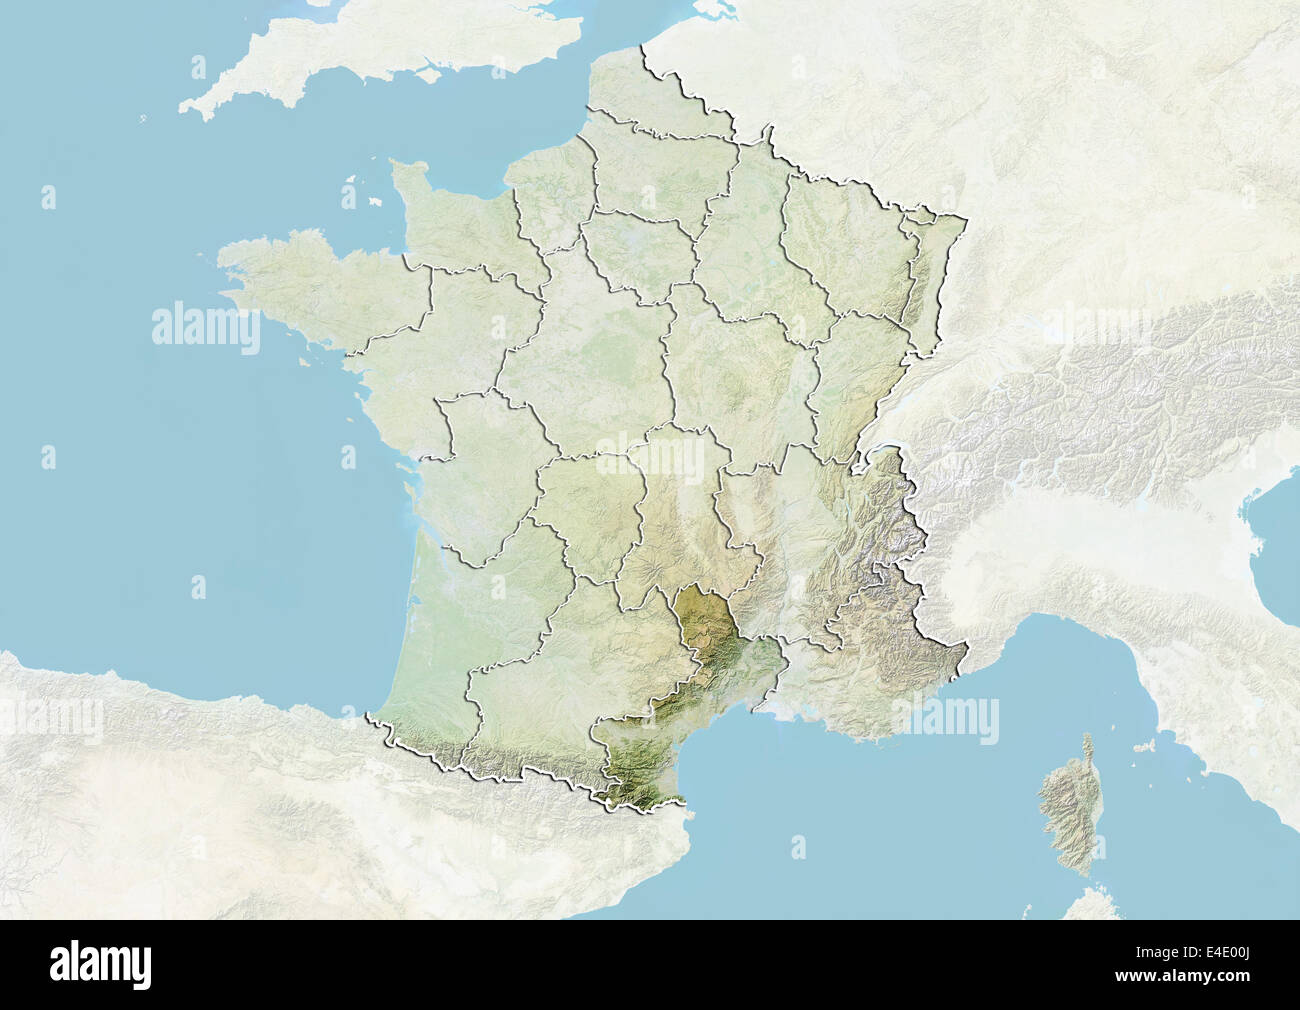 Roussillon France Map.France And The Region Of Languedoc Roussillon Relief Map Stock